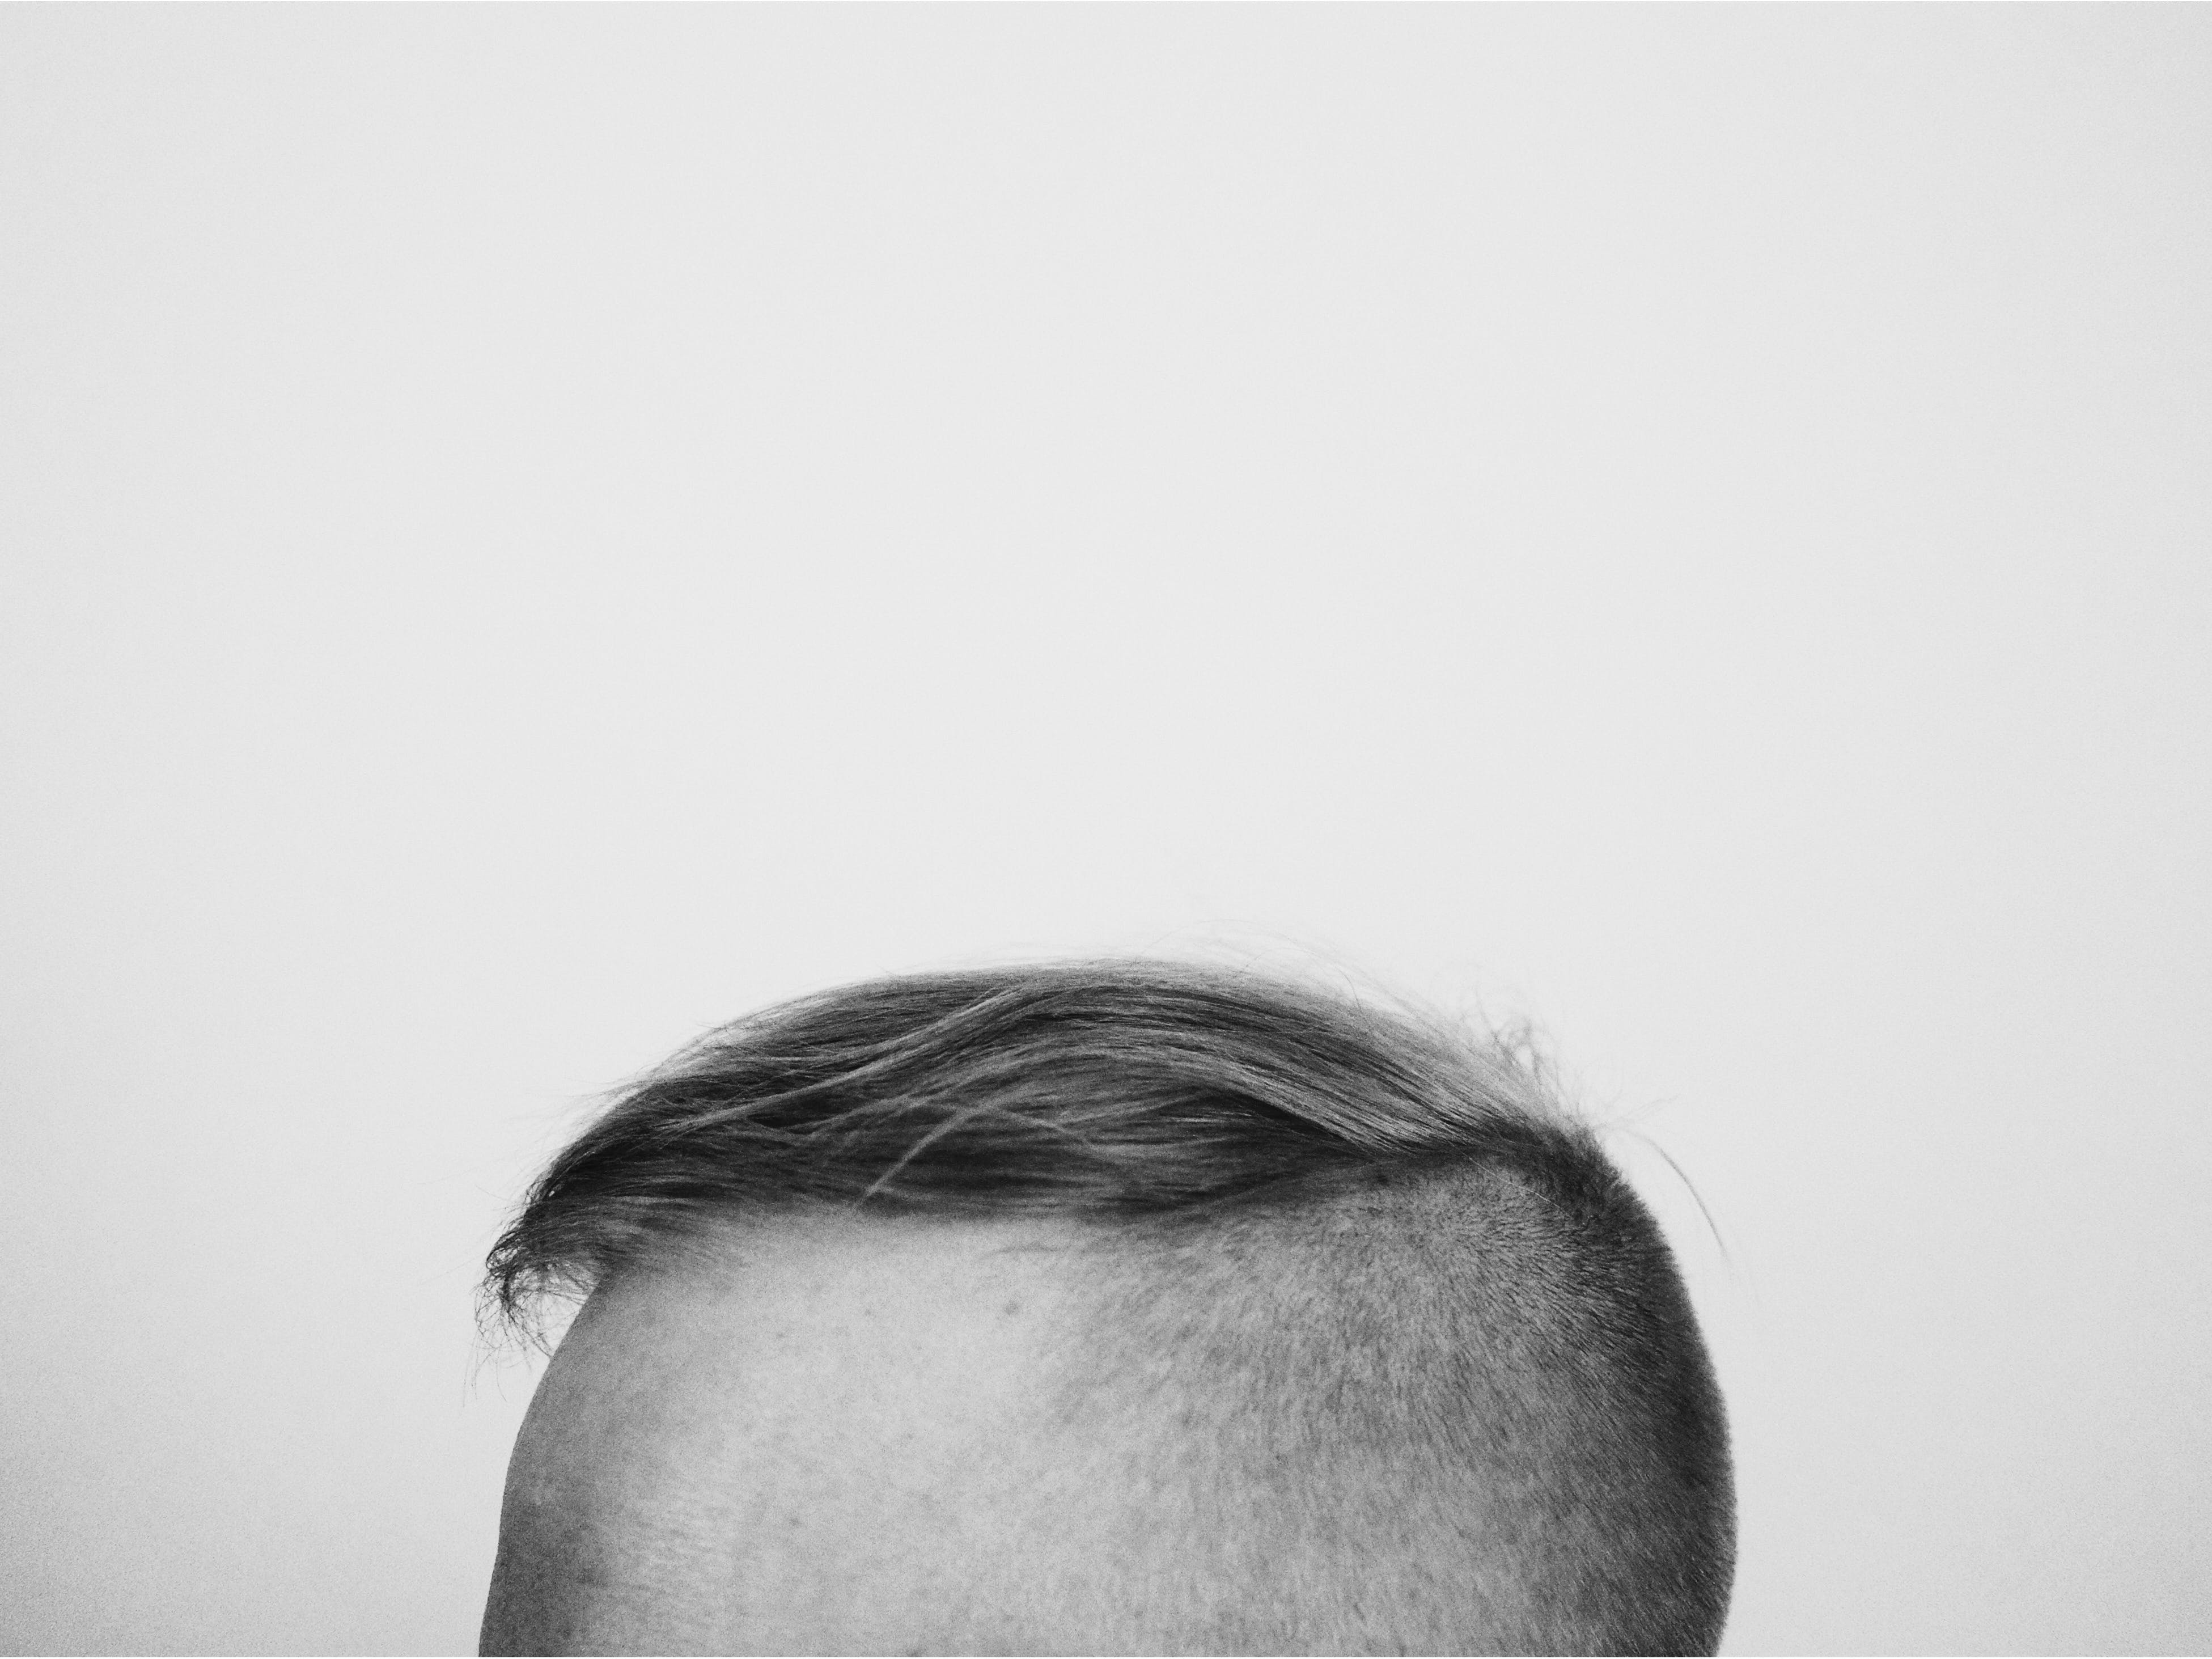 Free stock photo of head, hair, background, b&w